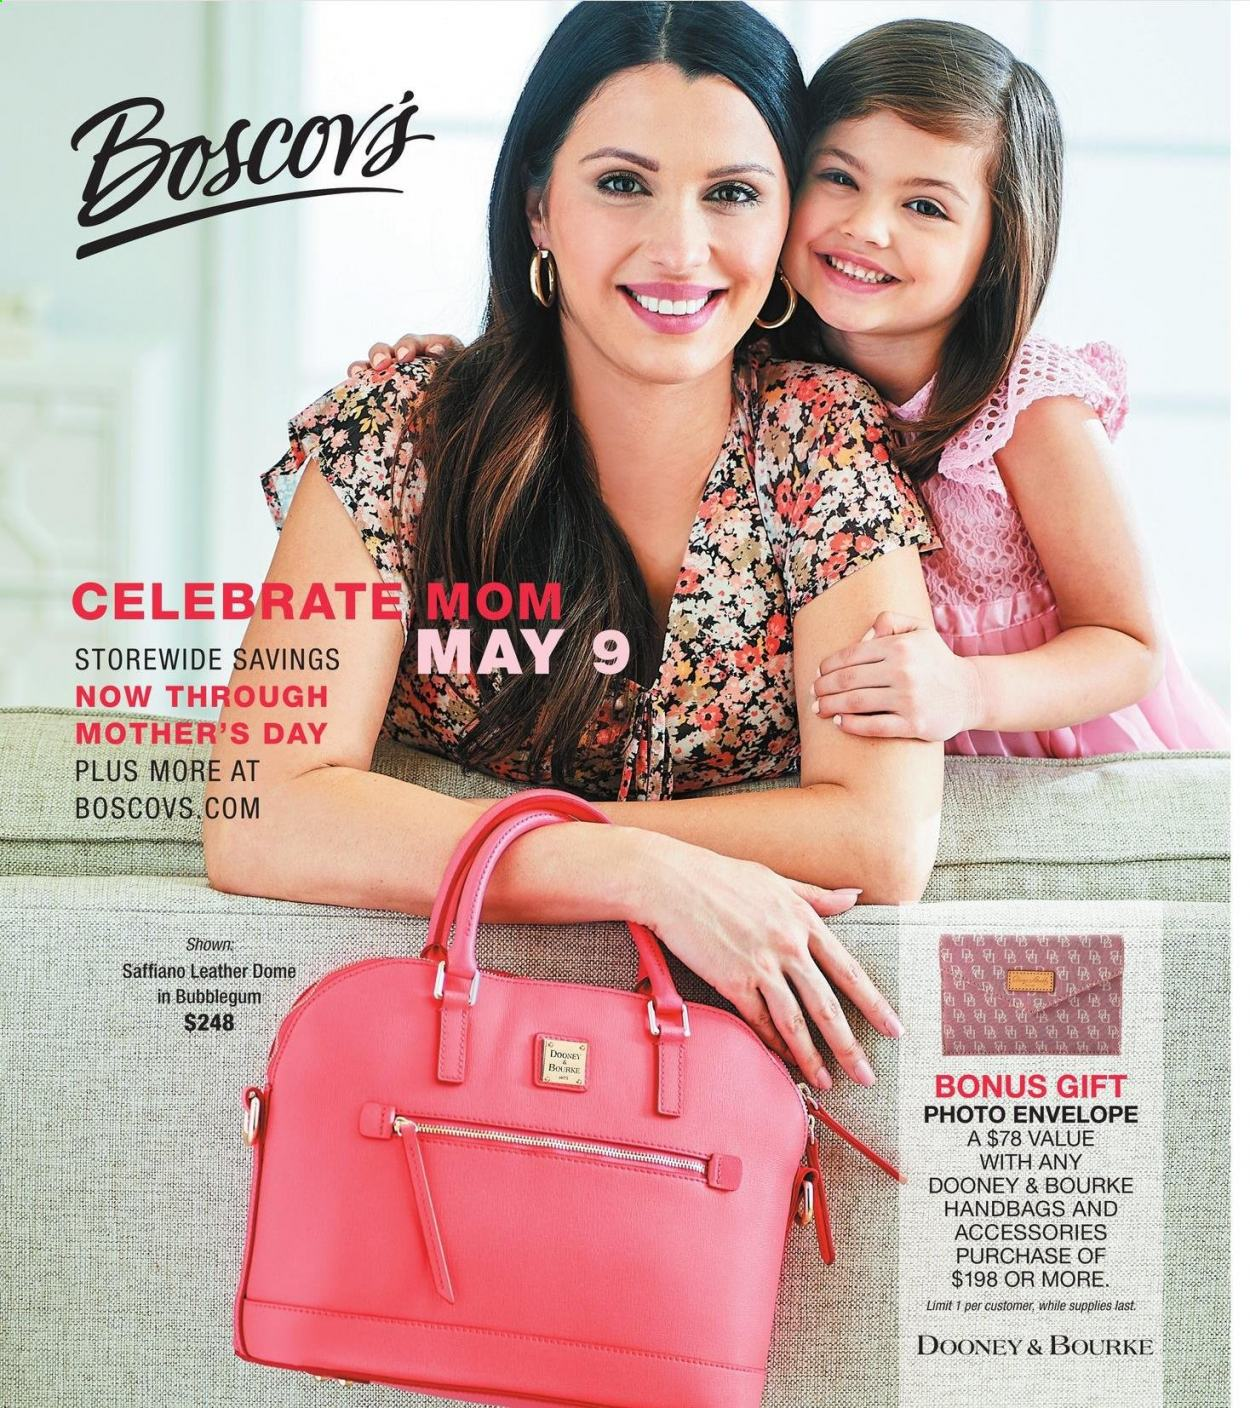 Boscov's Mother's Day 2021 Ad